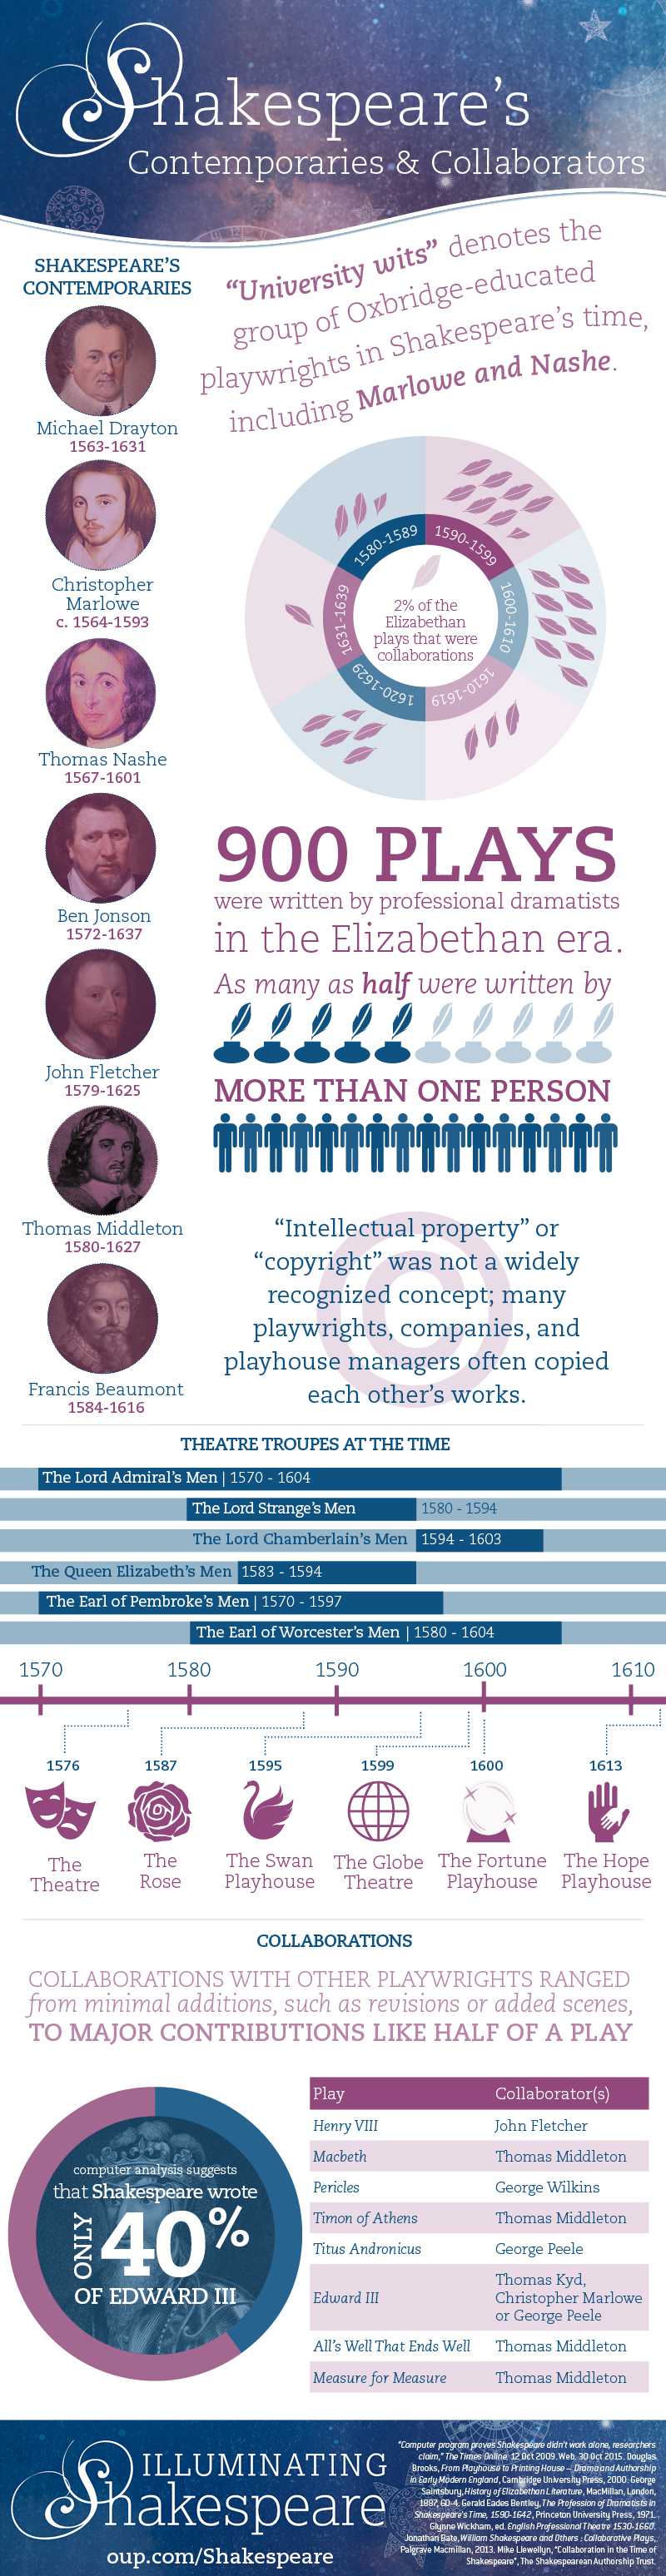 shakespeare s contemporaries and collaborators infographic oupblog featured image shakespeare